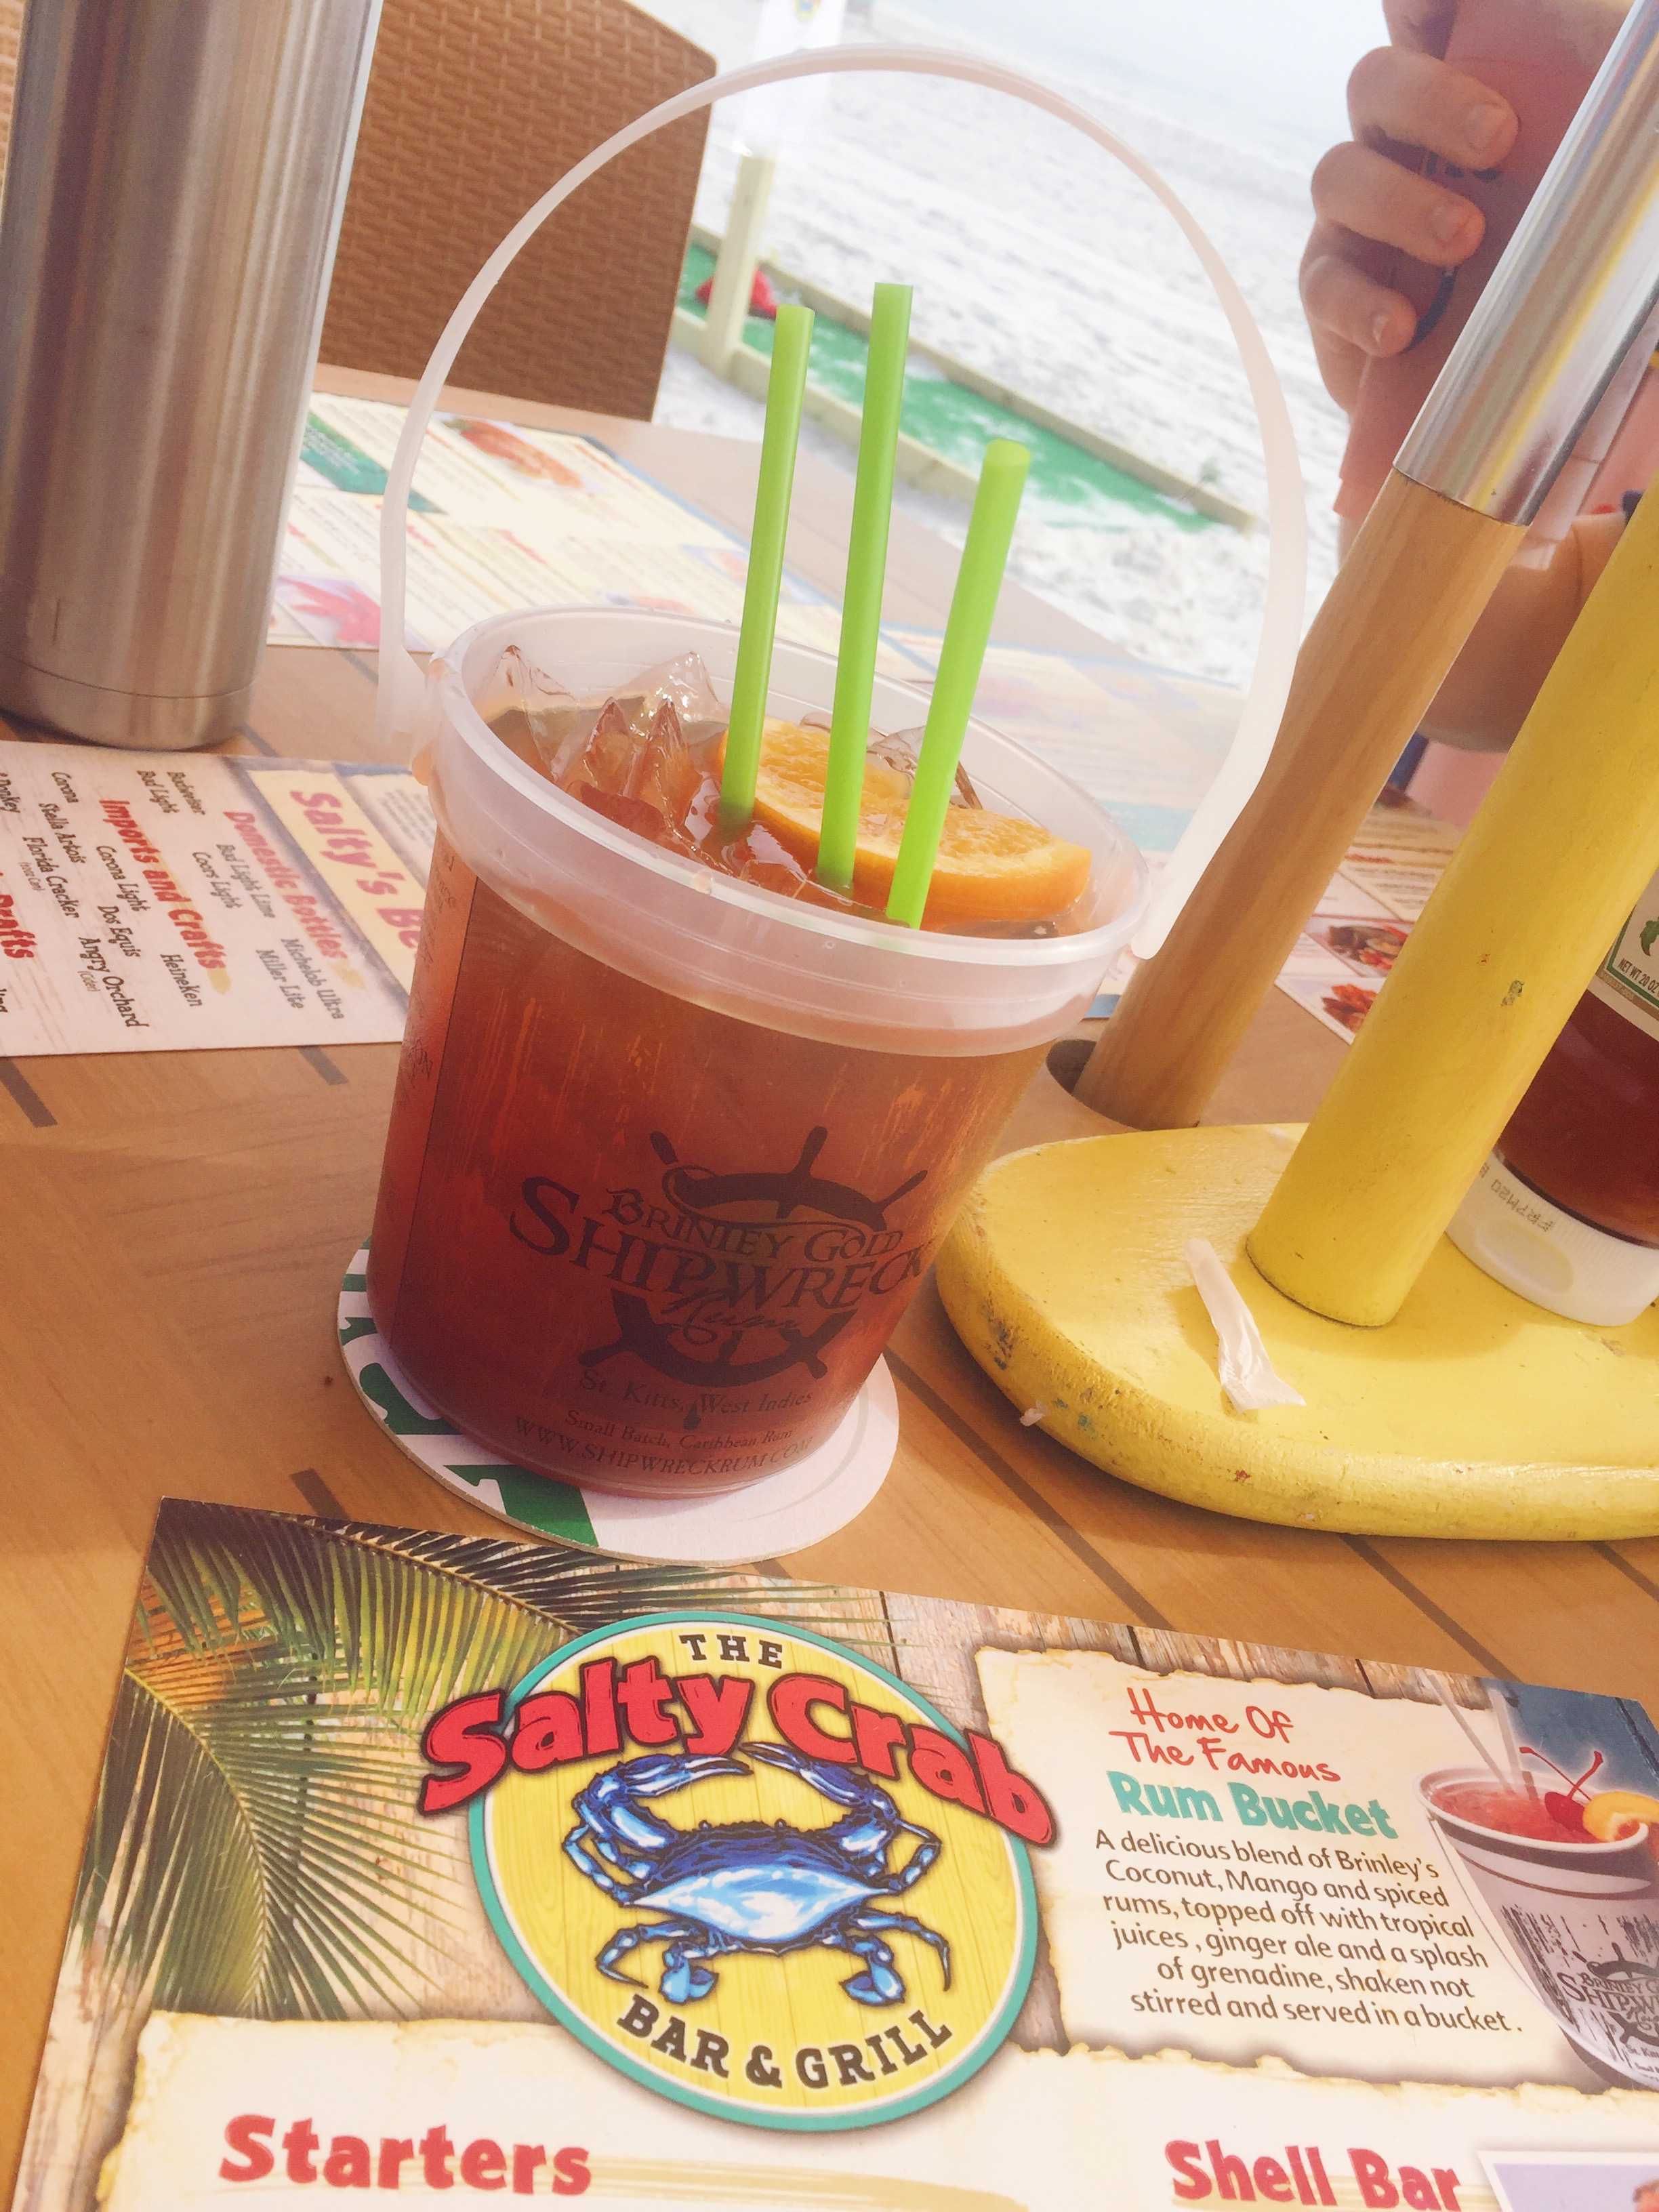 Sitting at The Salty Crab, drinking a Rum Bucket, with my feet in the sand. How fun! The food looked and smelled amazing too.